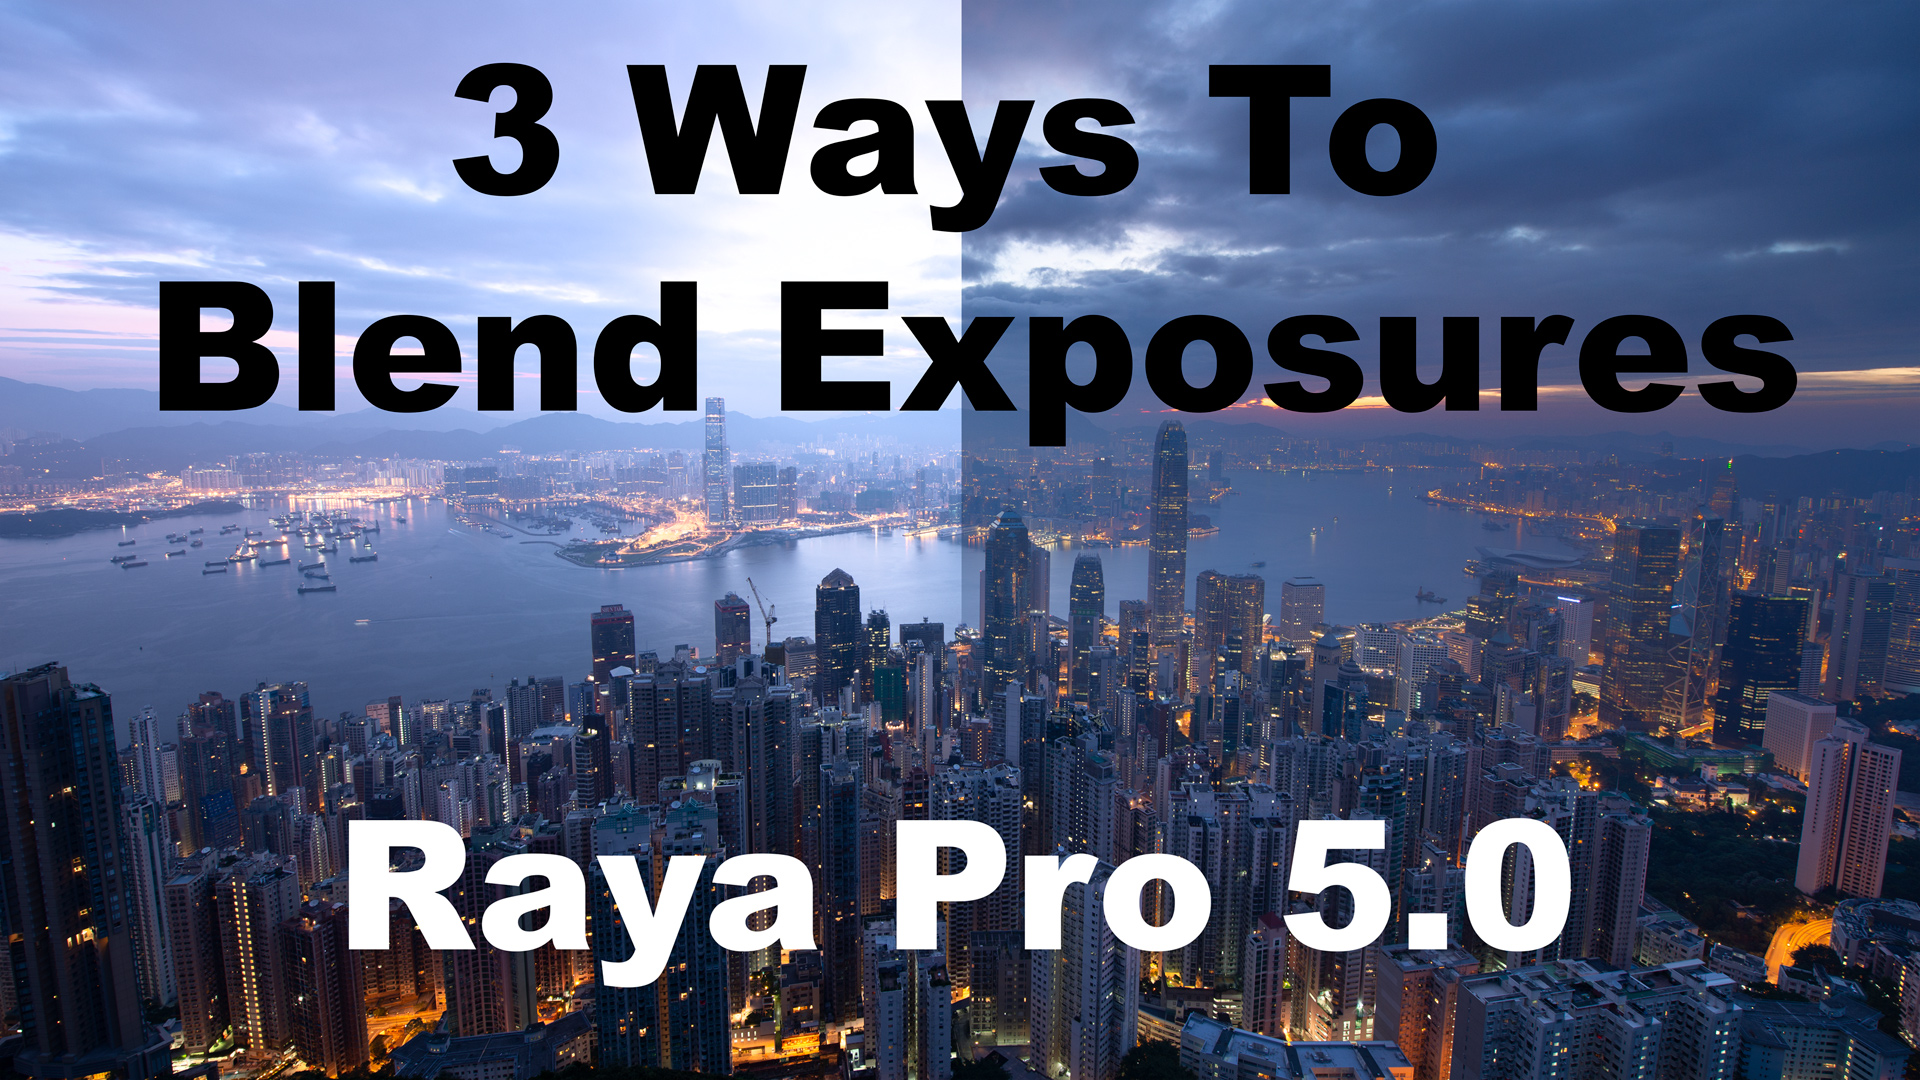 3 Ways To Blend Exposures in Raya Pro 5.0